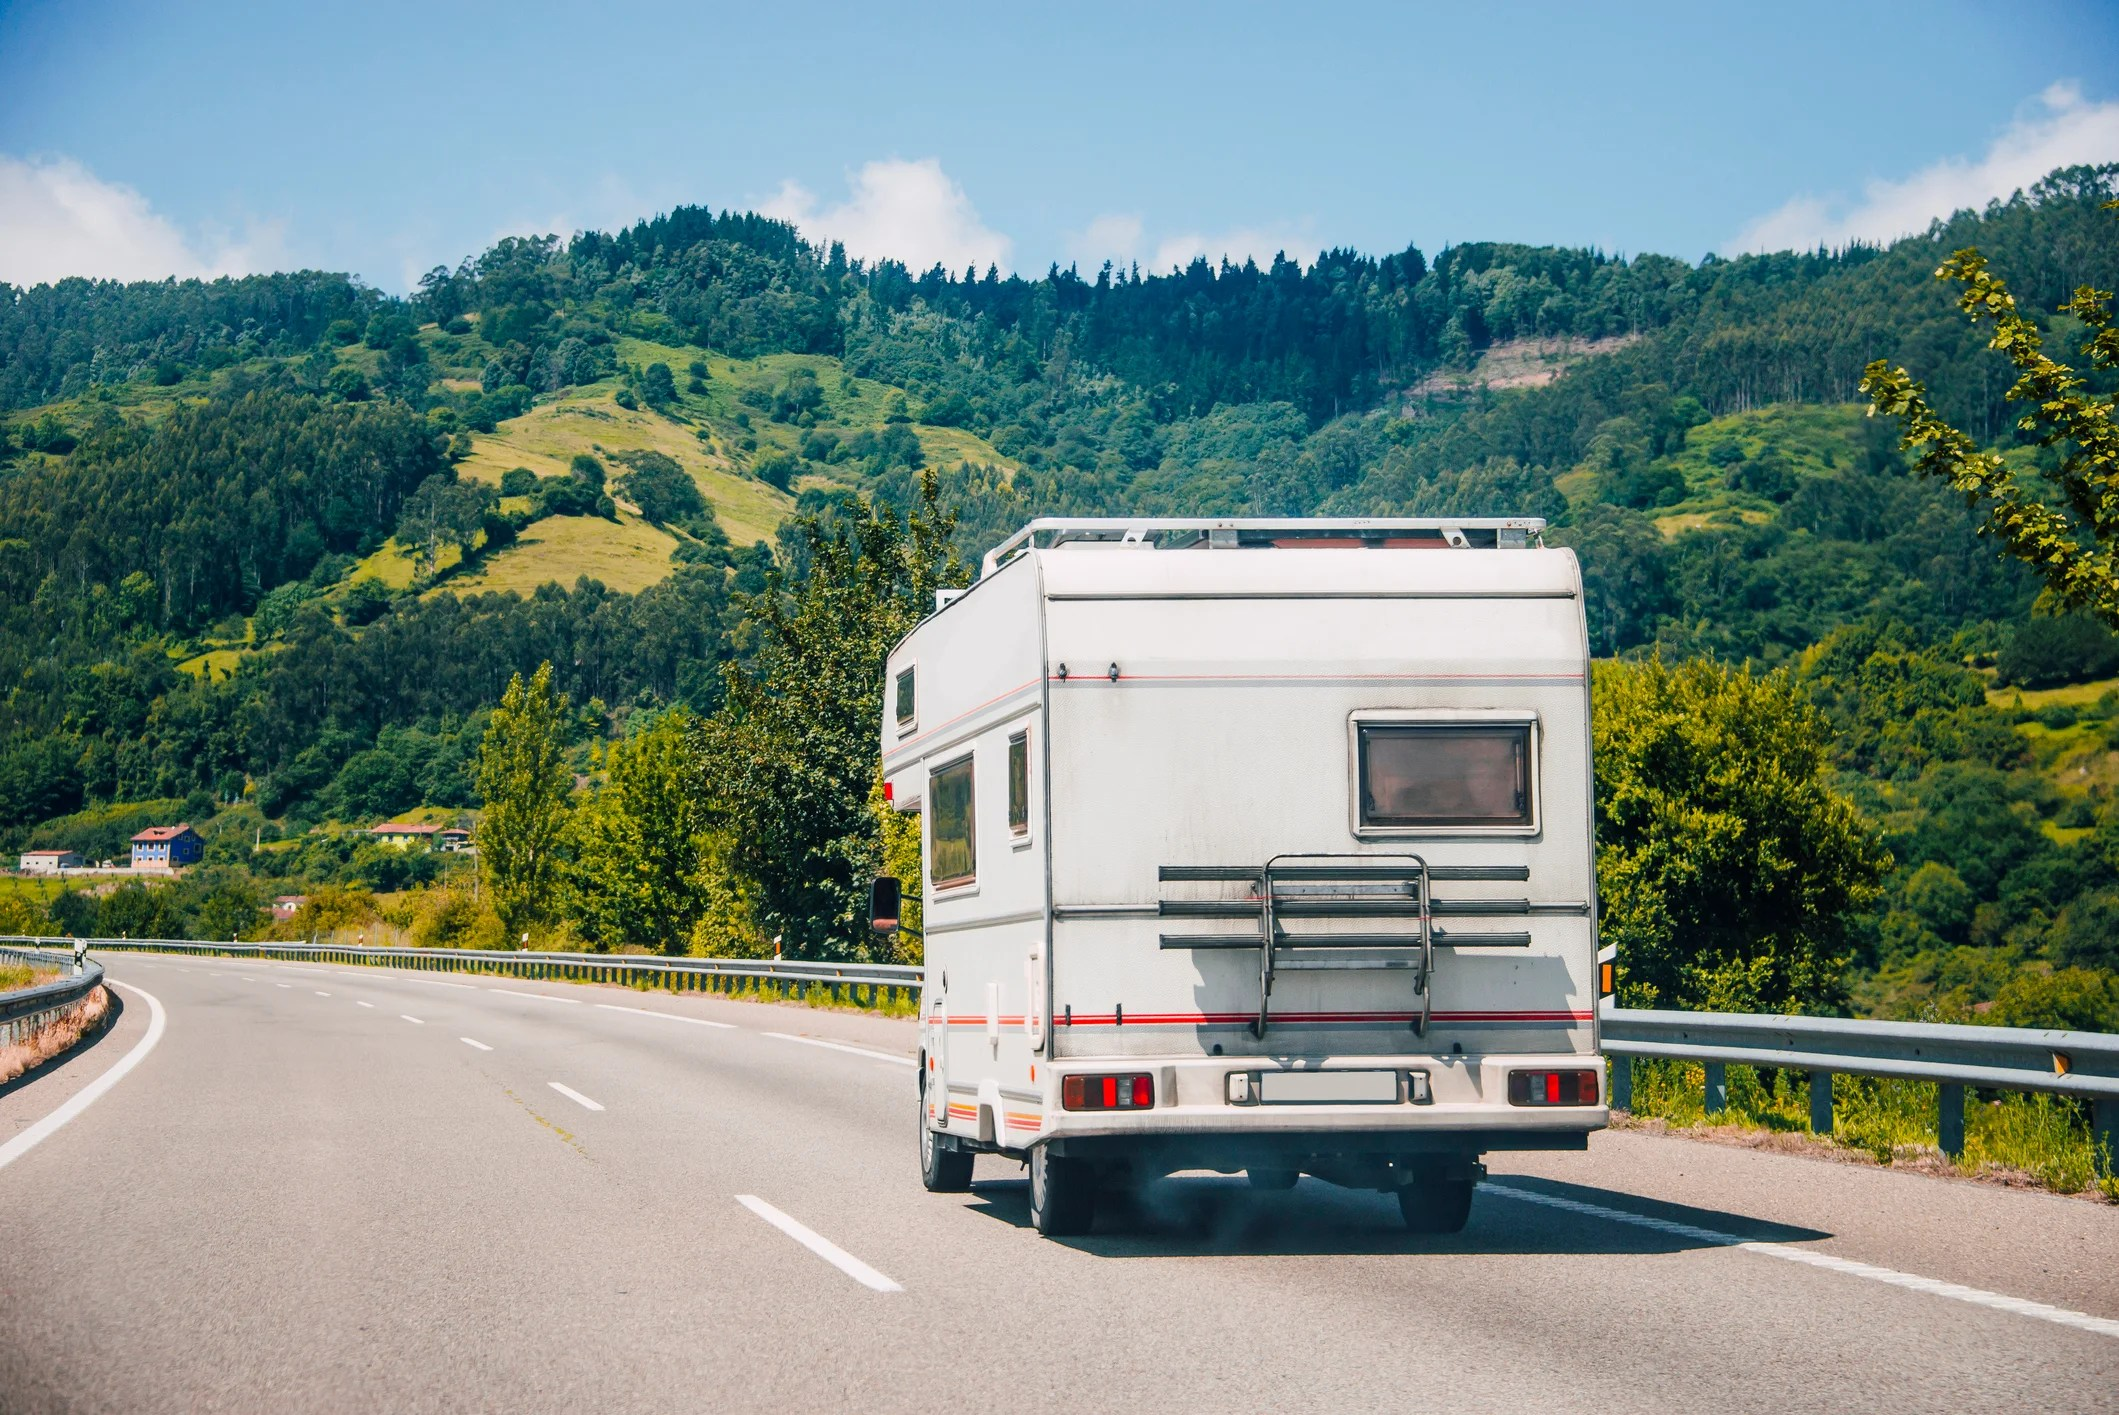 Citi Premier: Great for Road Trips and RV Rentals